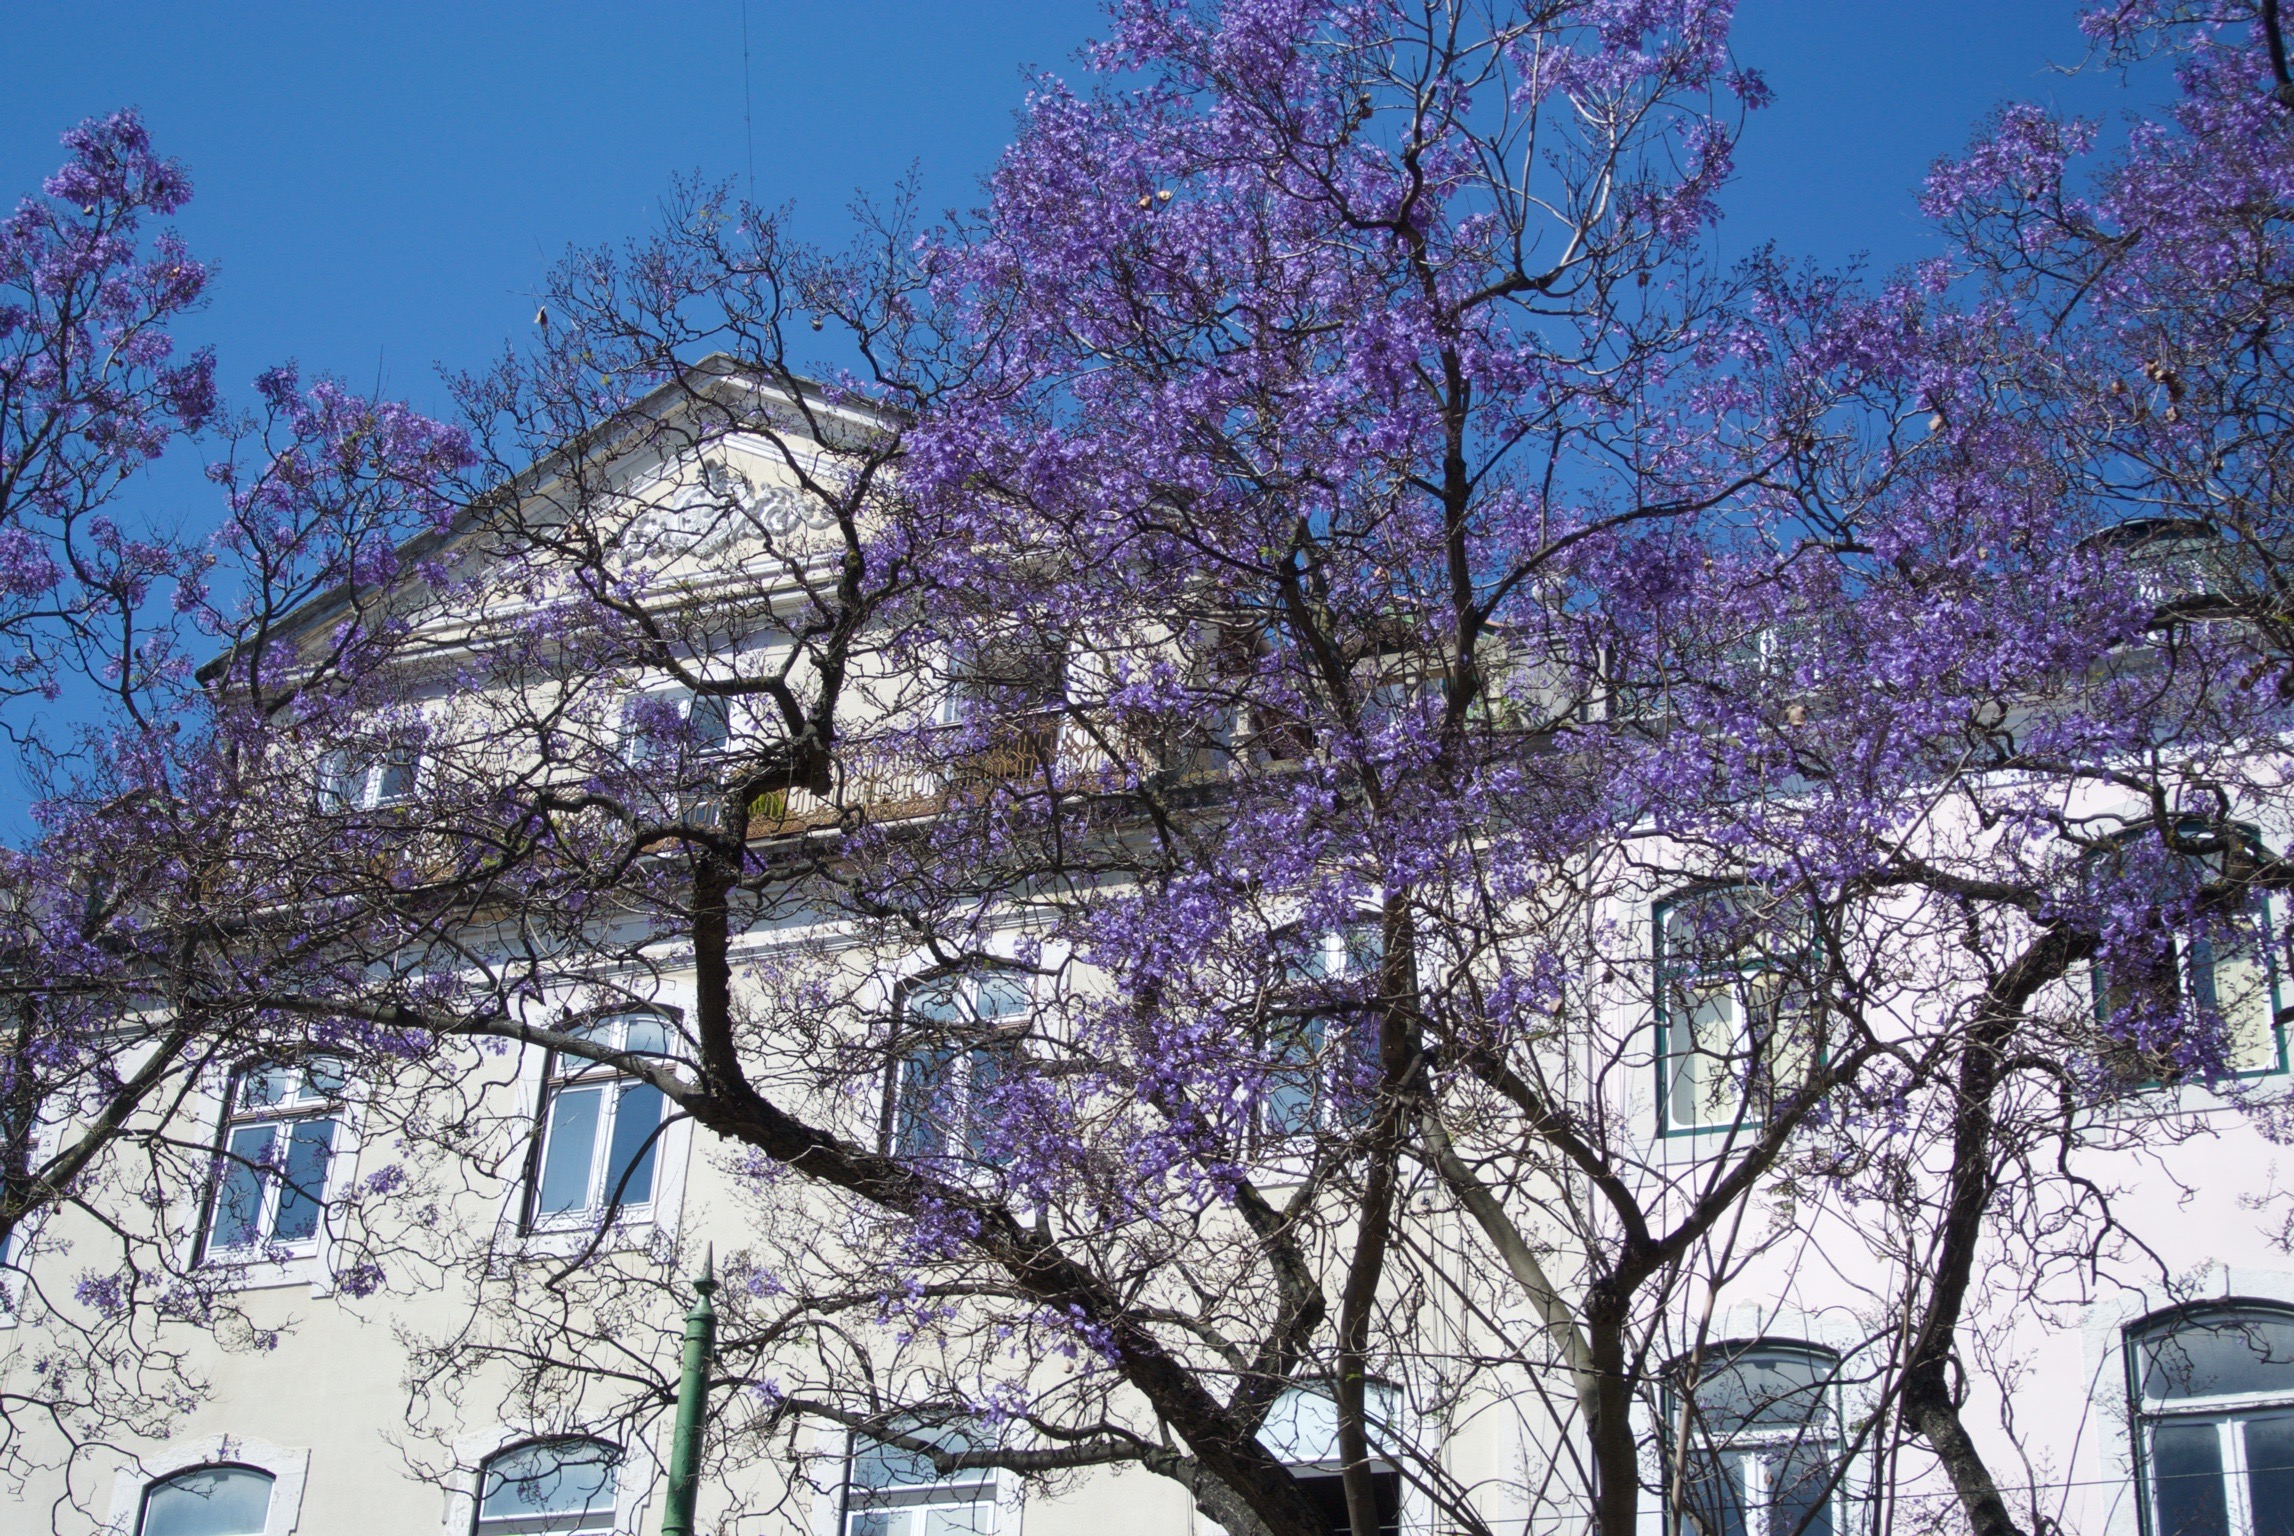 If you go in late May/June, the Jacaranda trees should be in bloom! They are a gorgeous purple, but their blossoms do make the street below sticky